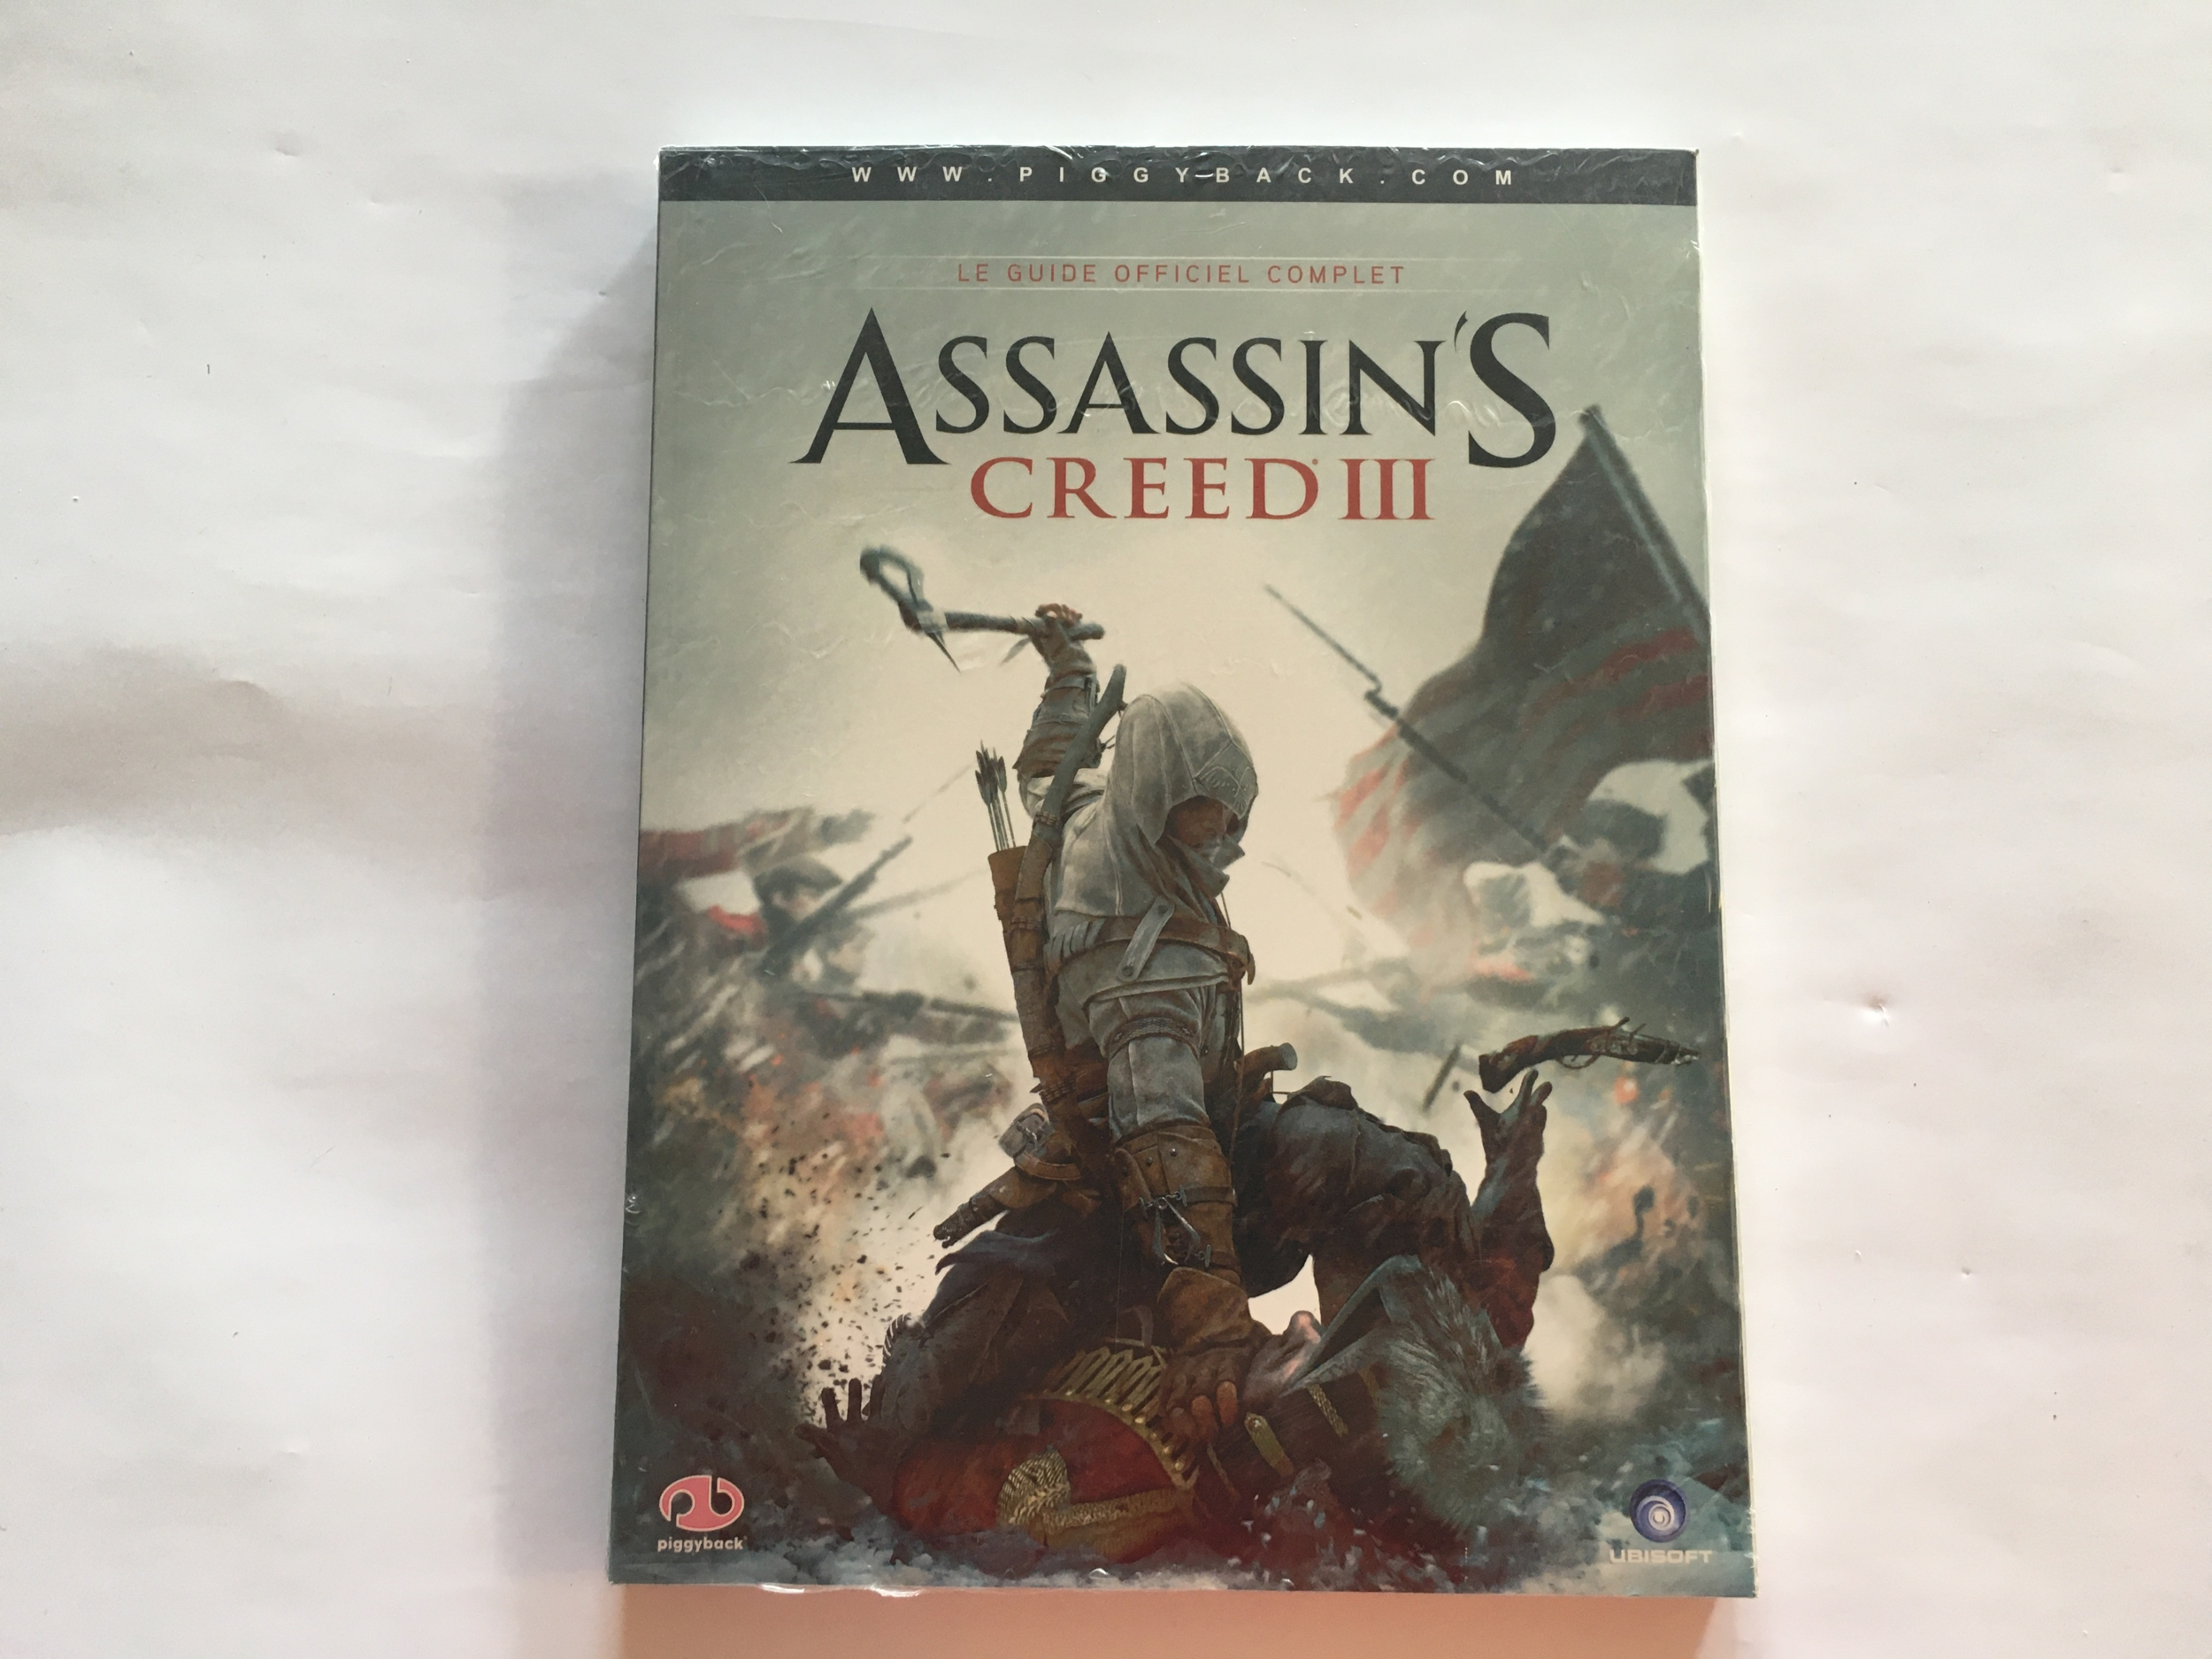 Guide Officiel Complet Assassin\'s Creed III Neuf FR